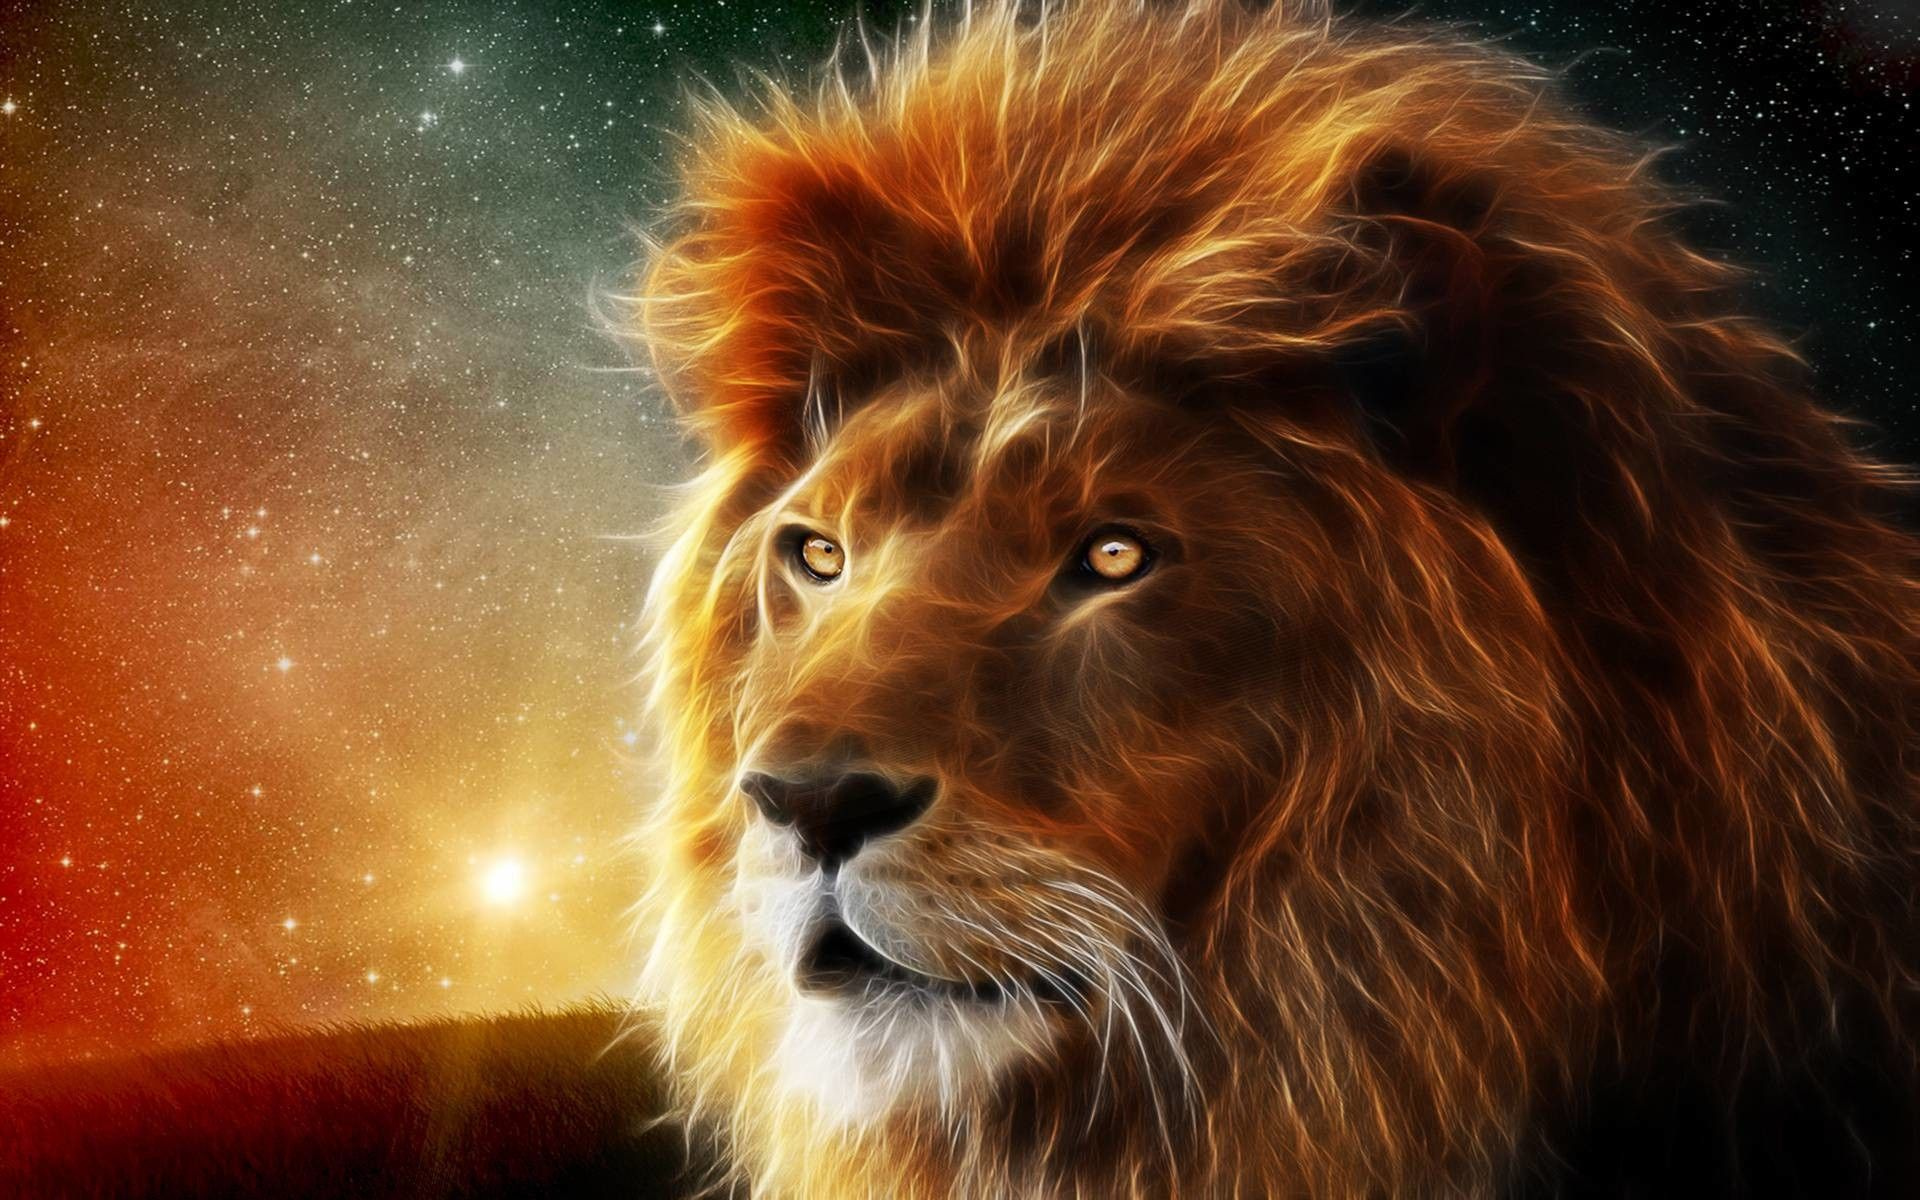 Neon Lion Wallpapers Top Free Neon Lion Backgrounds